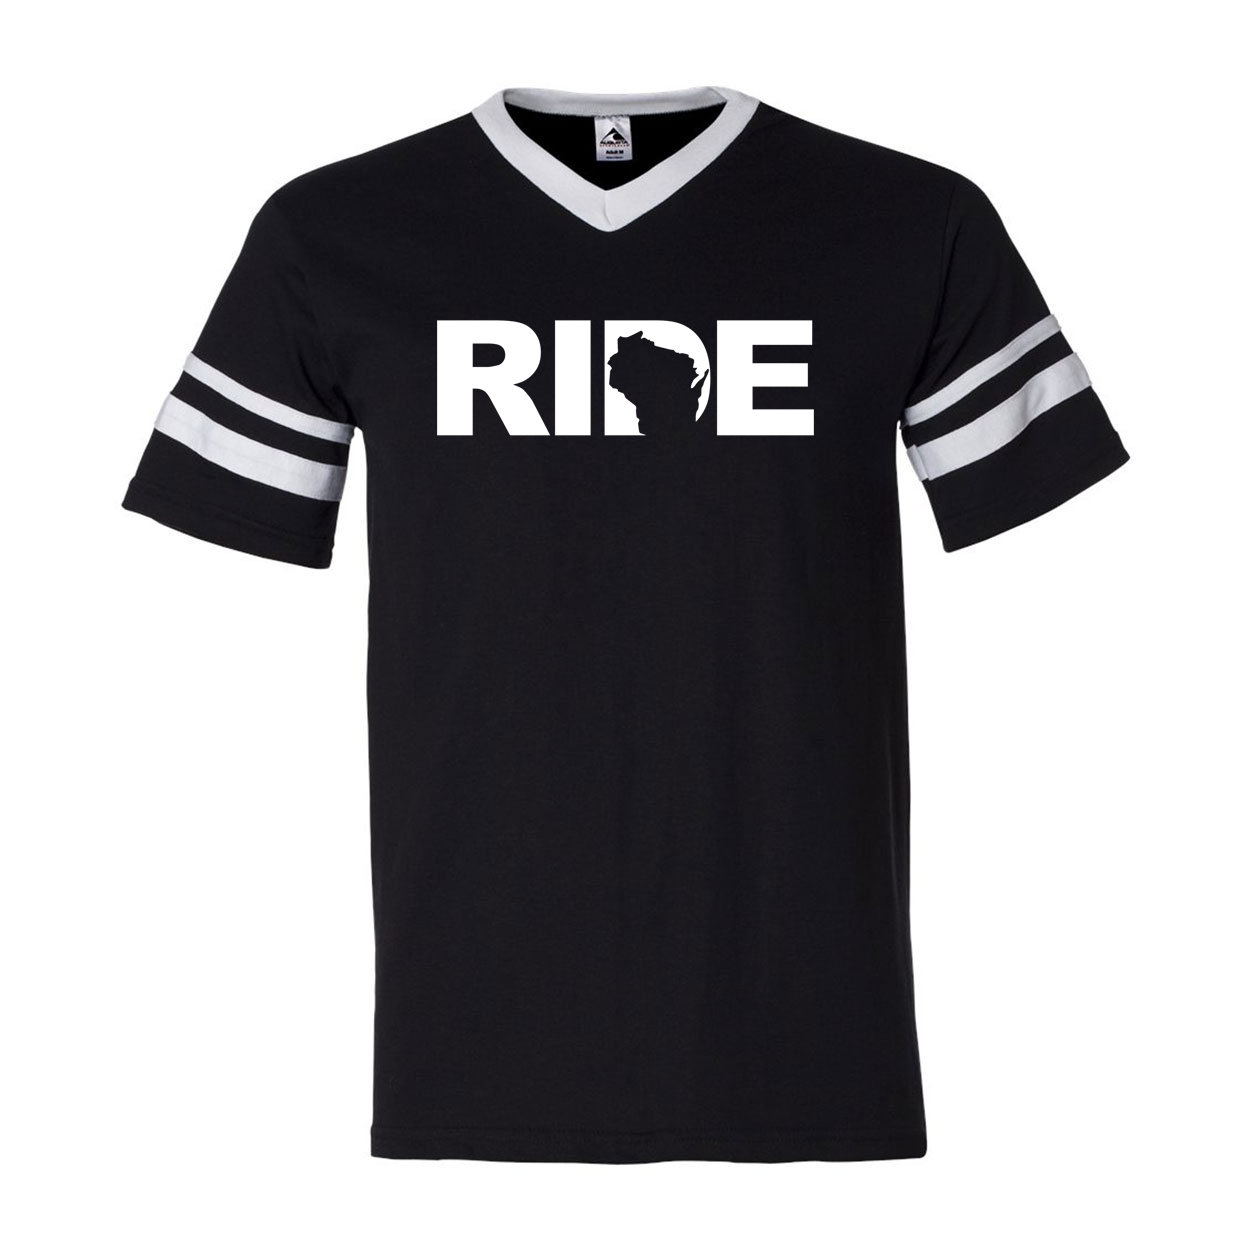 Ride Wisconsin Classic Premium Striped Jersey T-Shirt Black/White (White Logo)